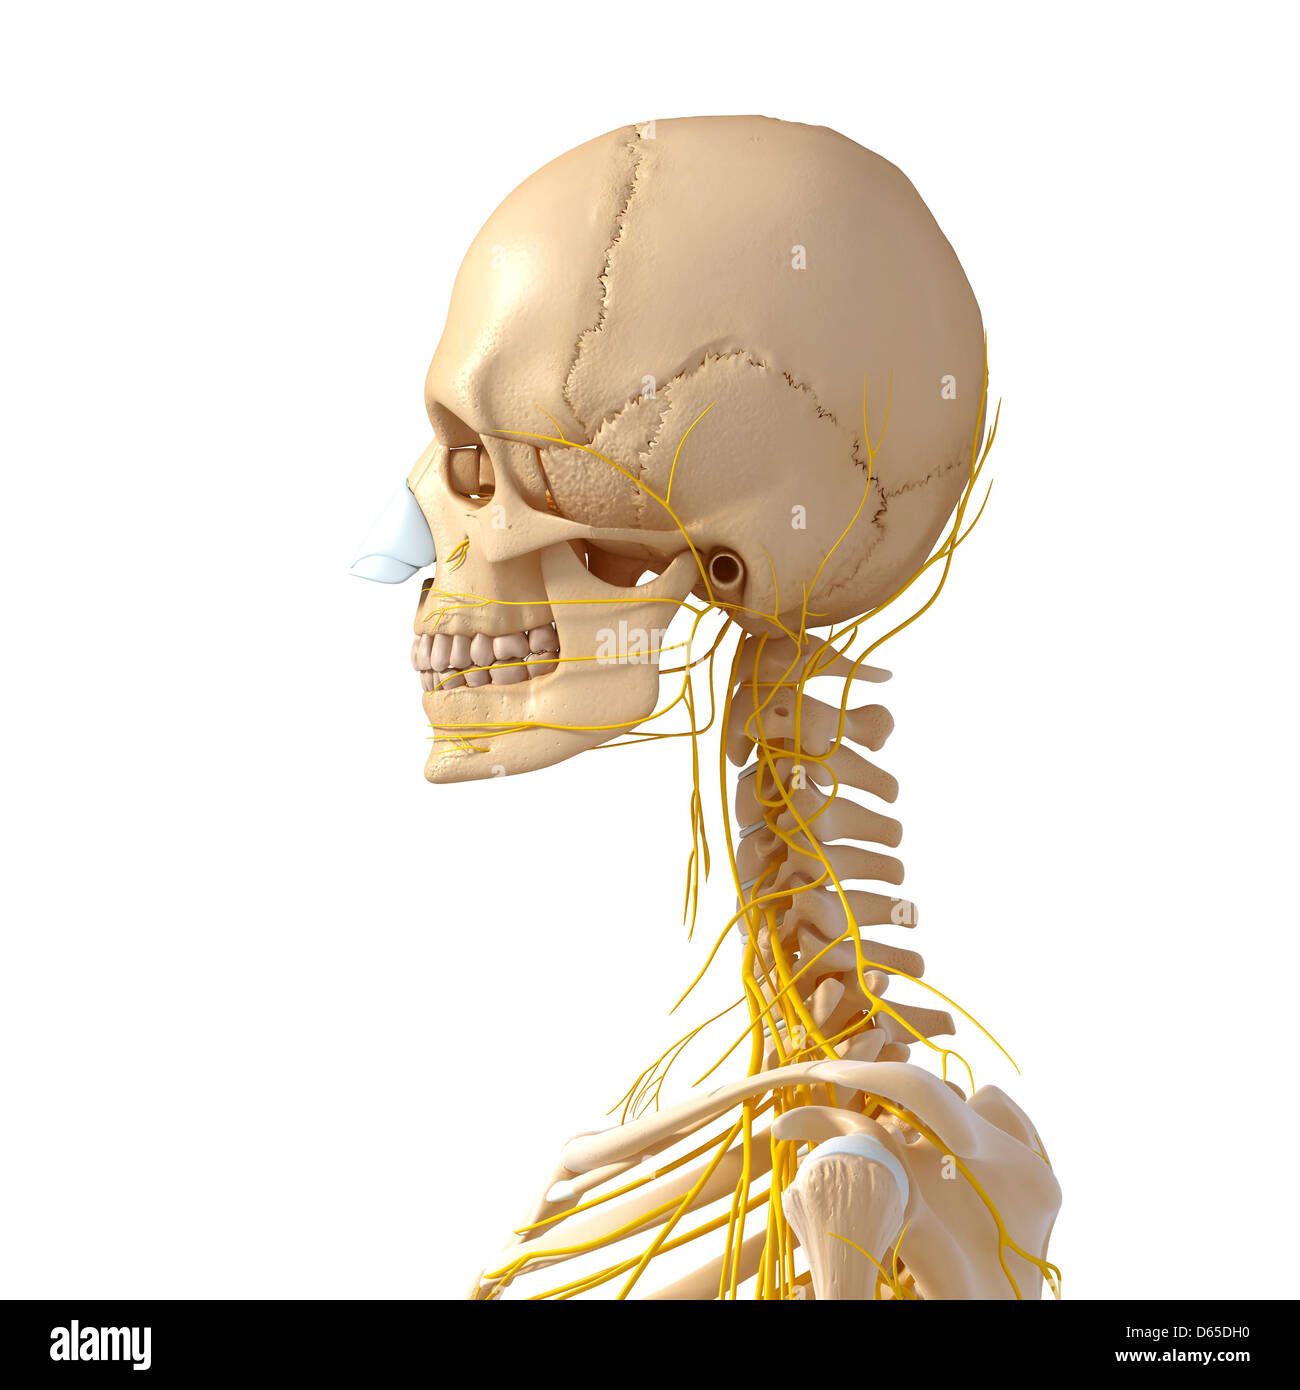 Human Neck Anatomy Stock Photos Human Neck Anatomy Stock Images